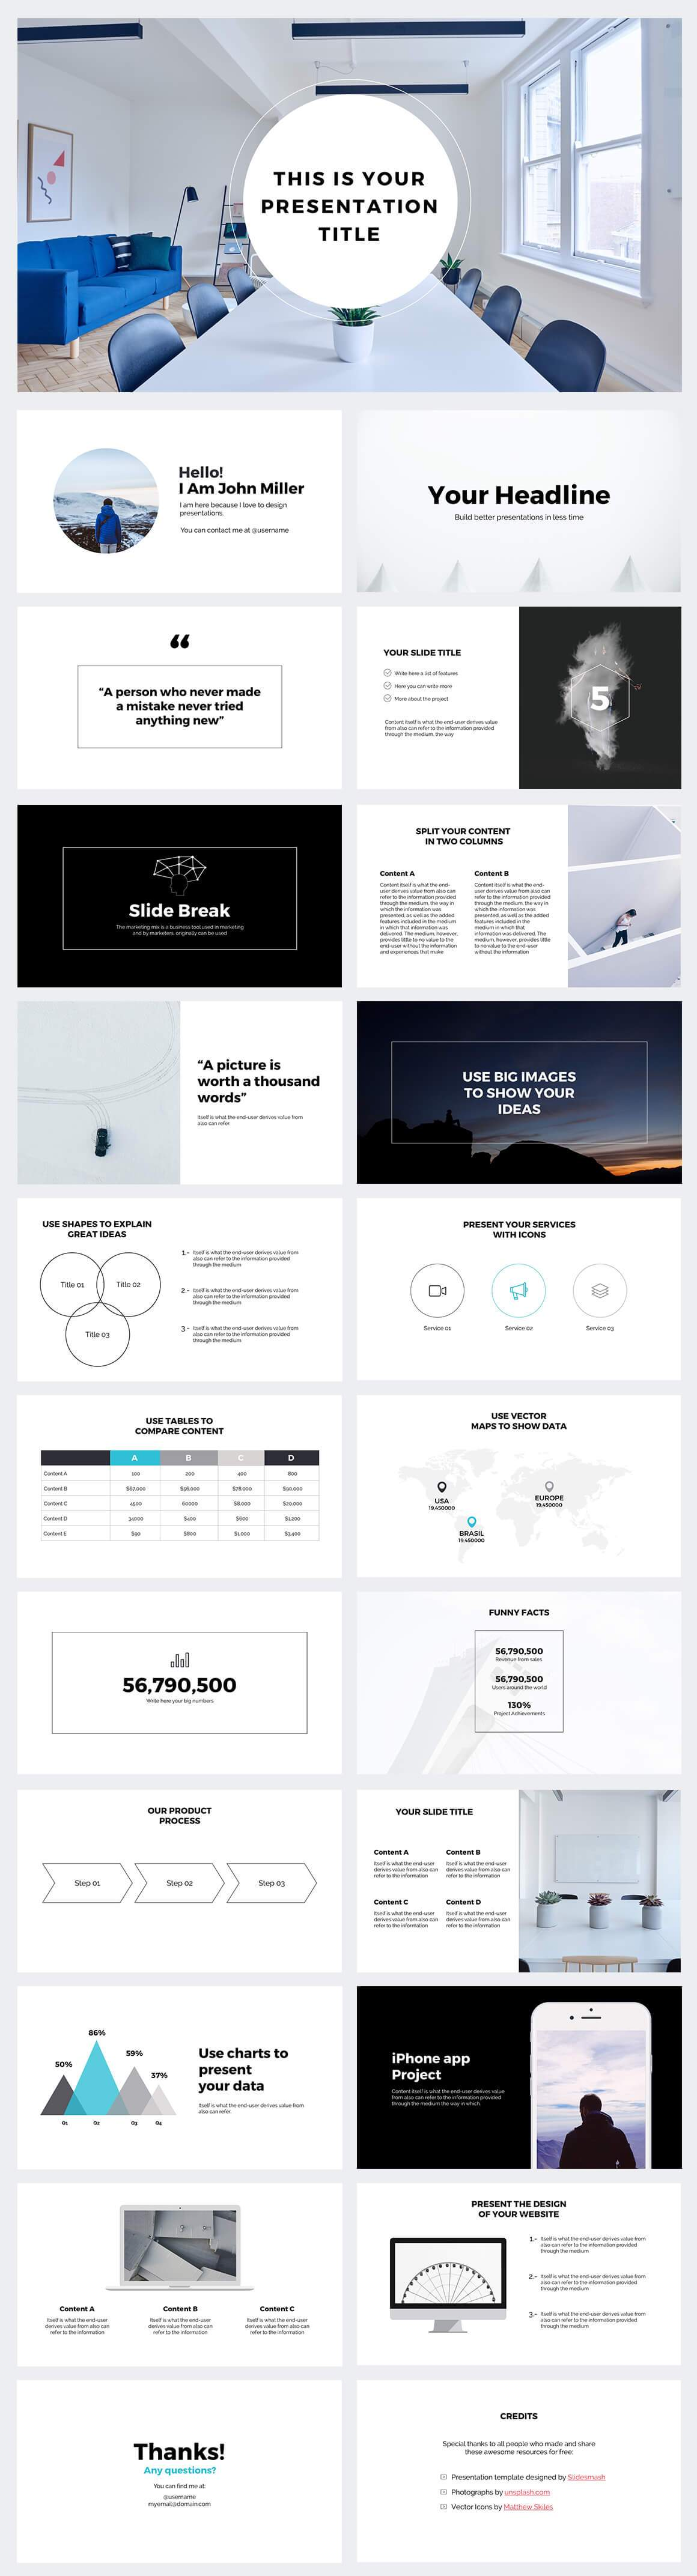 business strategy powerpoint template large-preview | Free ...